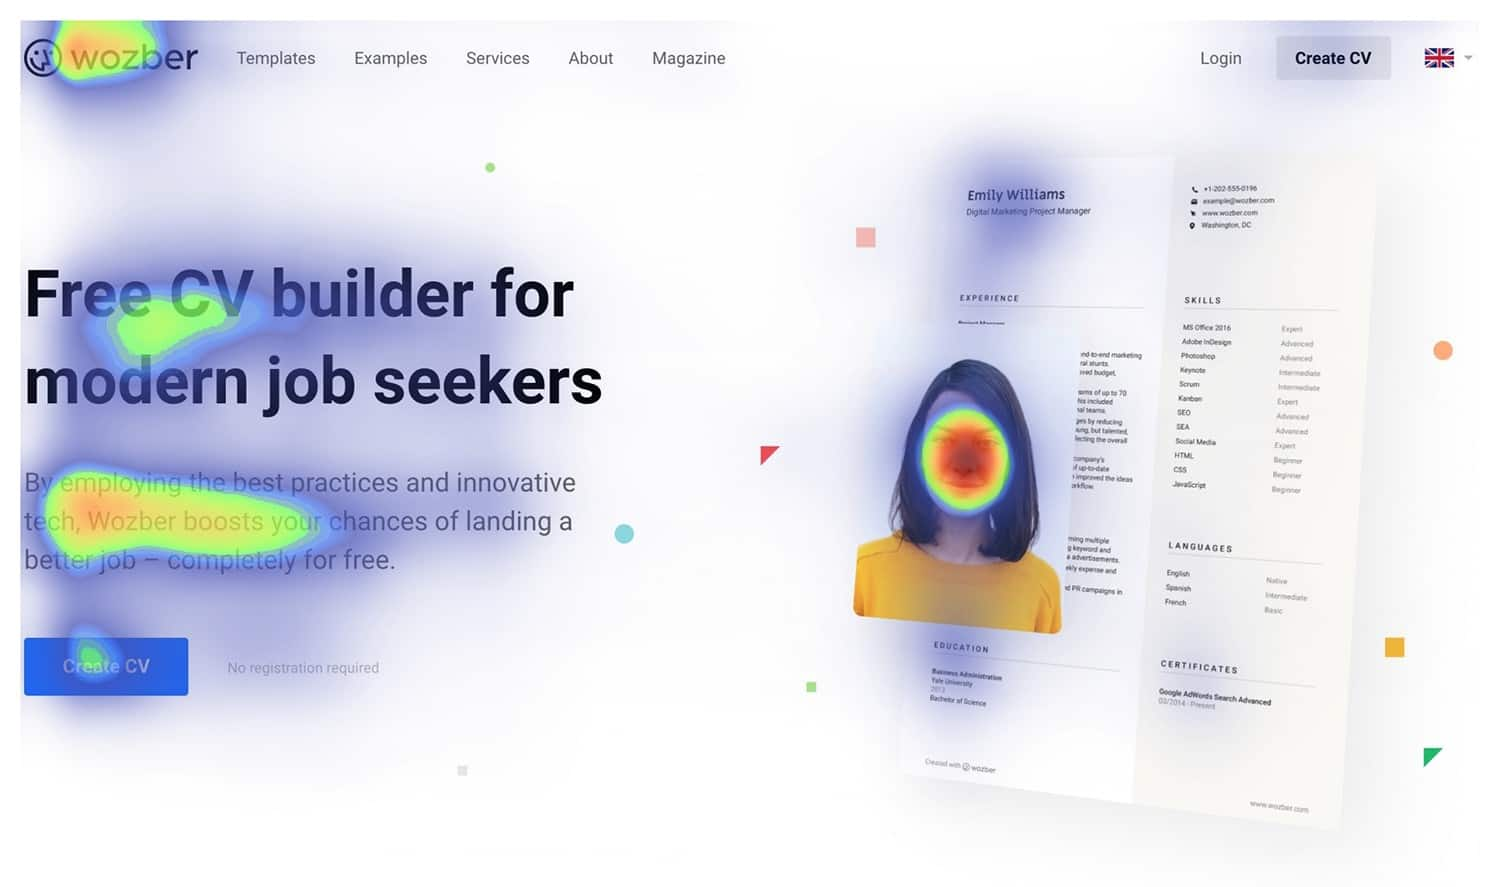 Award Winning Web Designs Through the Eyes of User